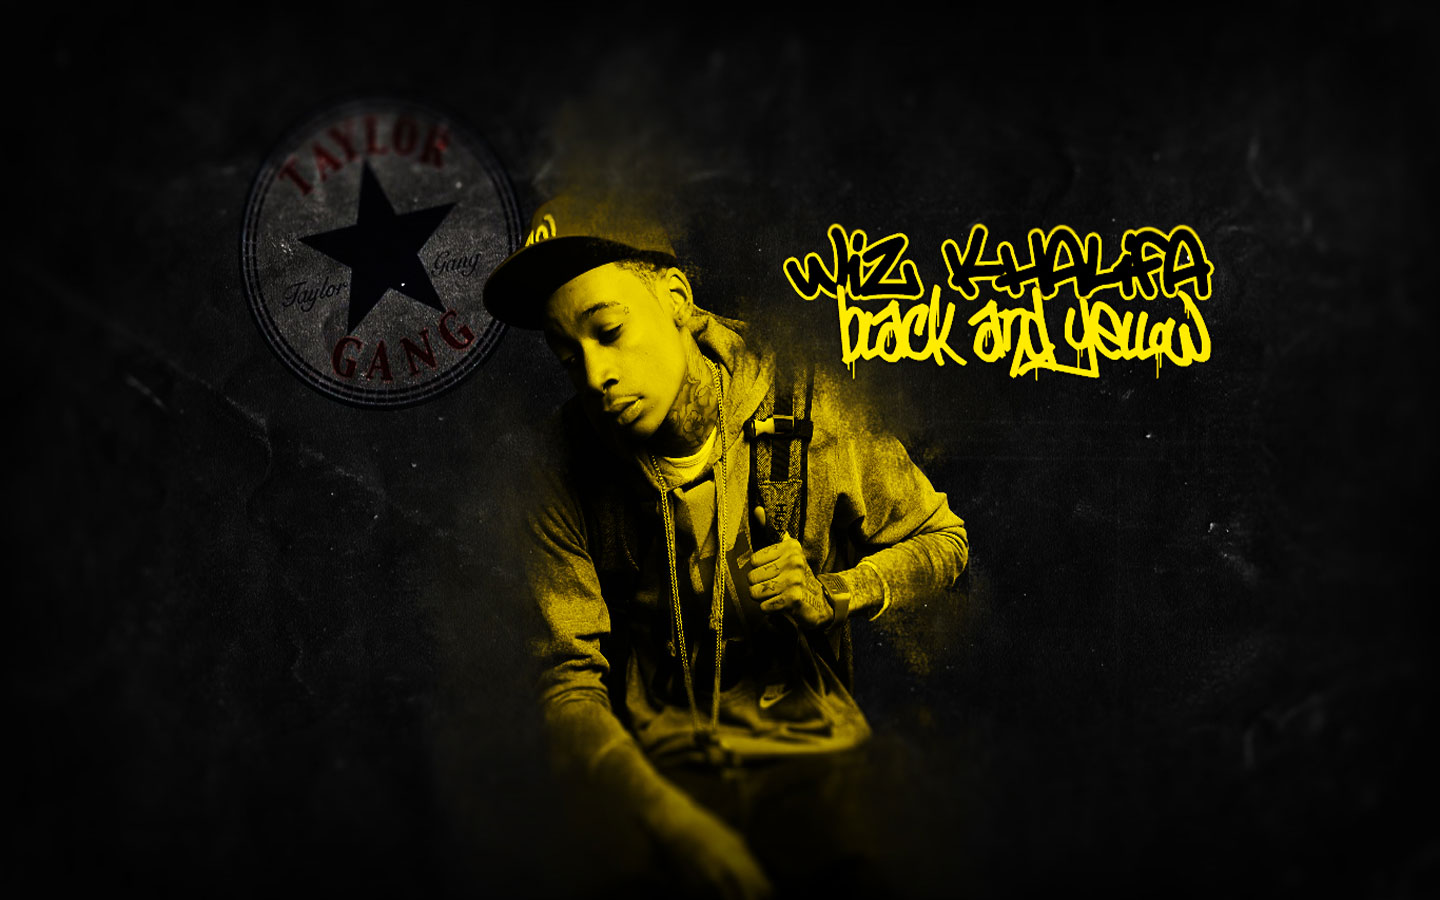 Wiz khalifa black and yellow remix album cover pictures 4